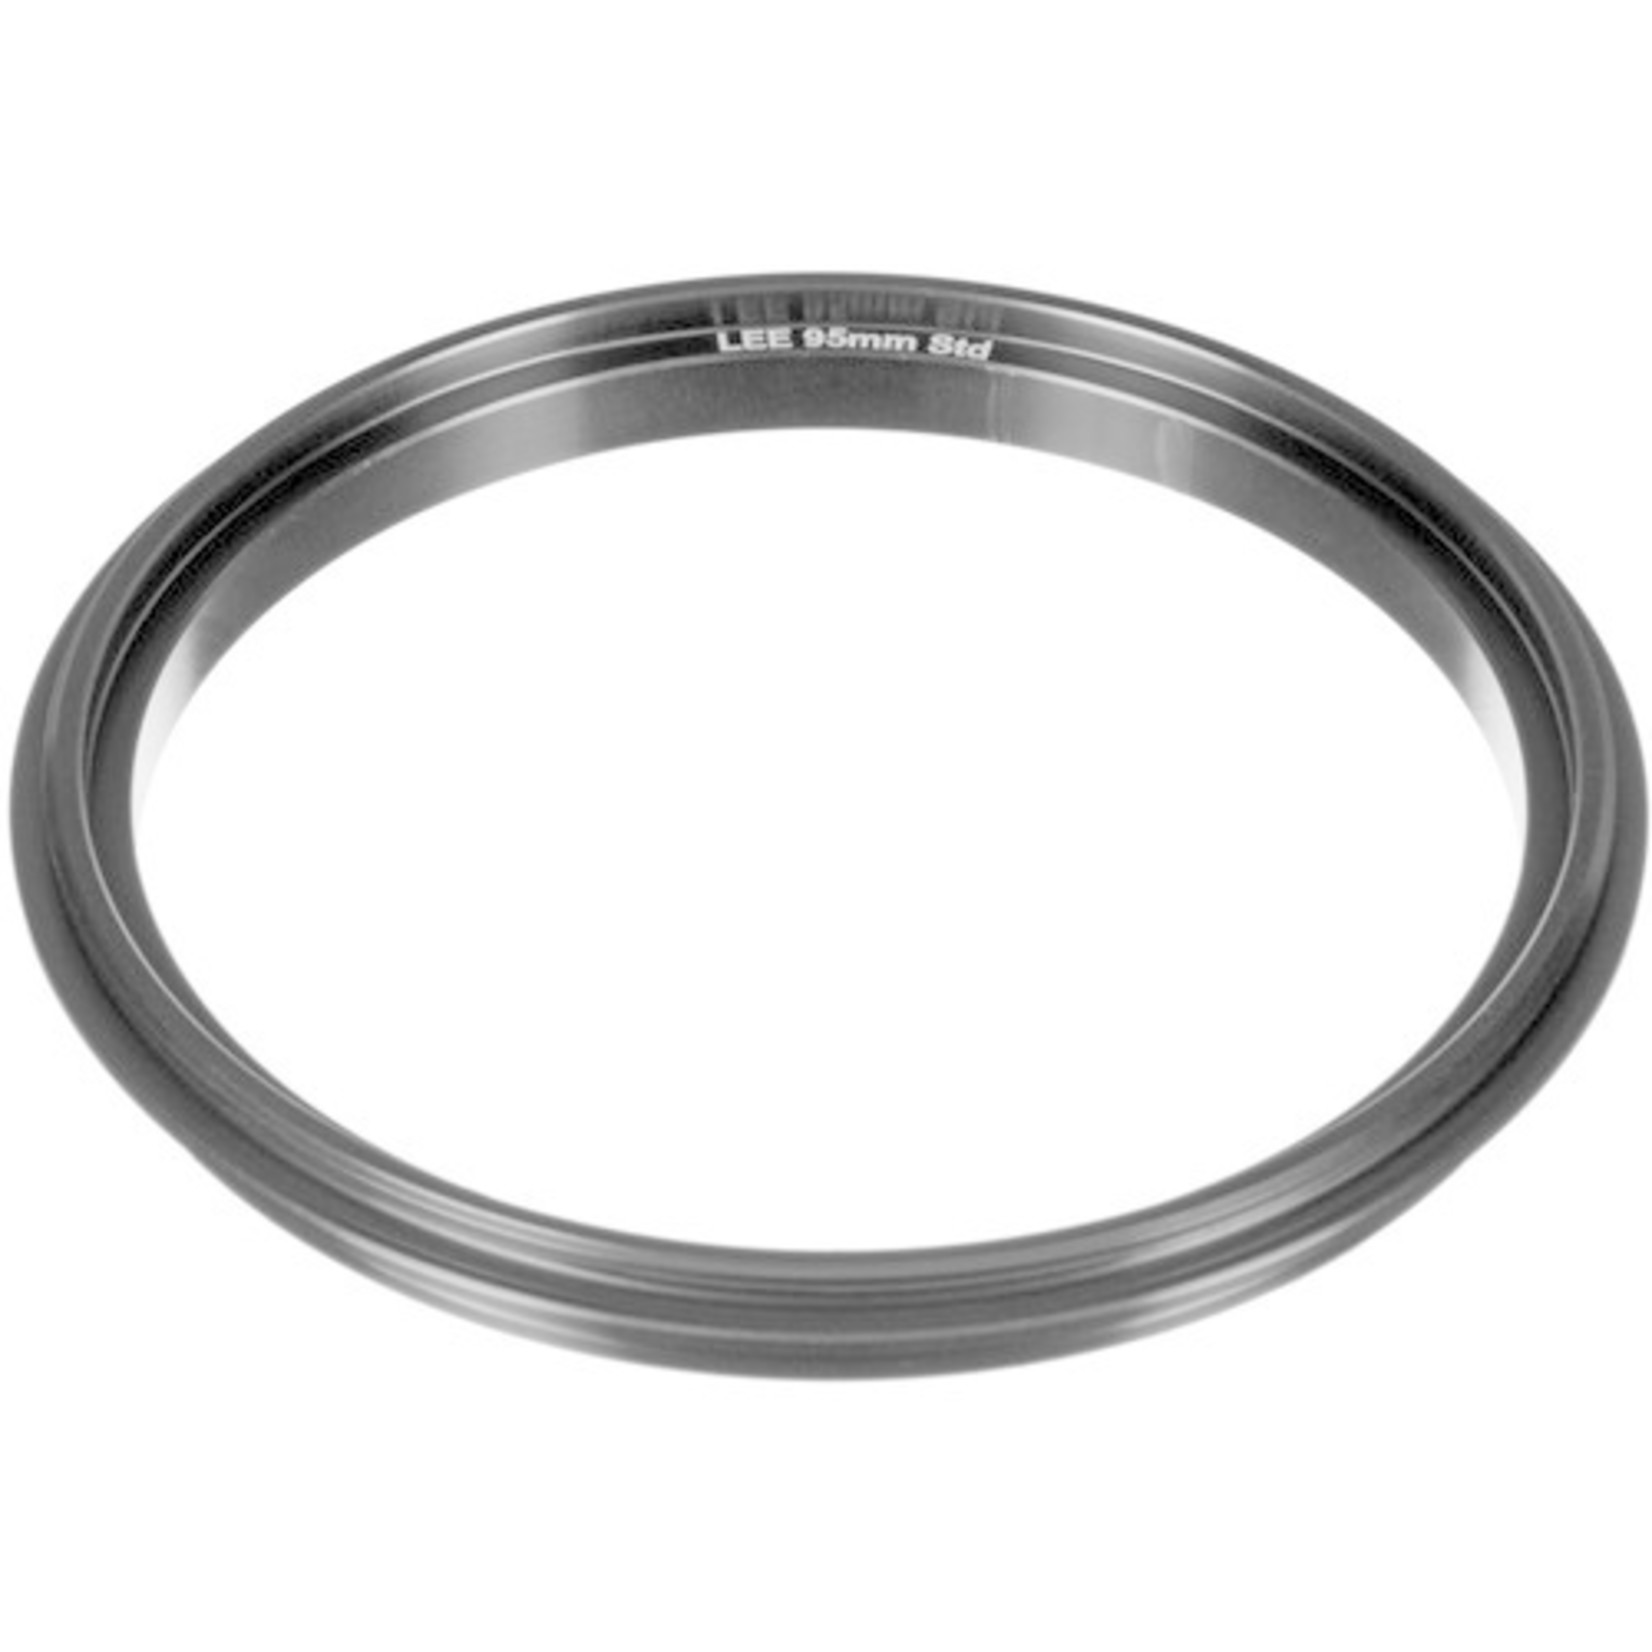 Lee LEE Filters 95mm Adapter Ring for Foundation Kit